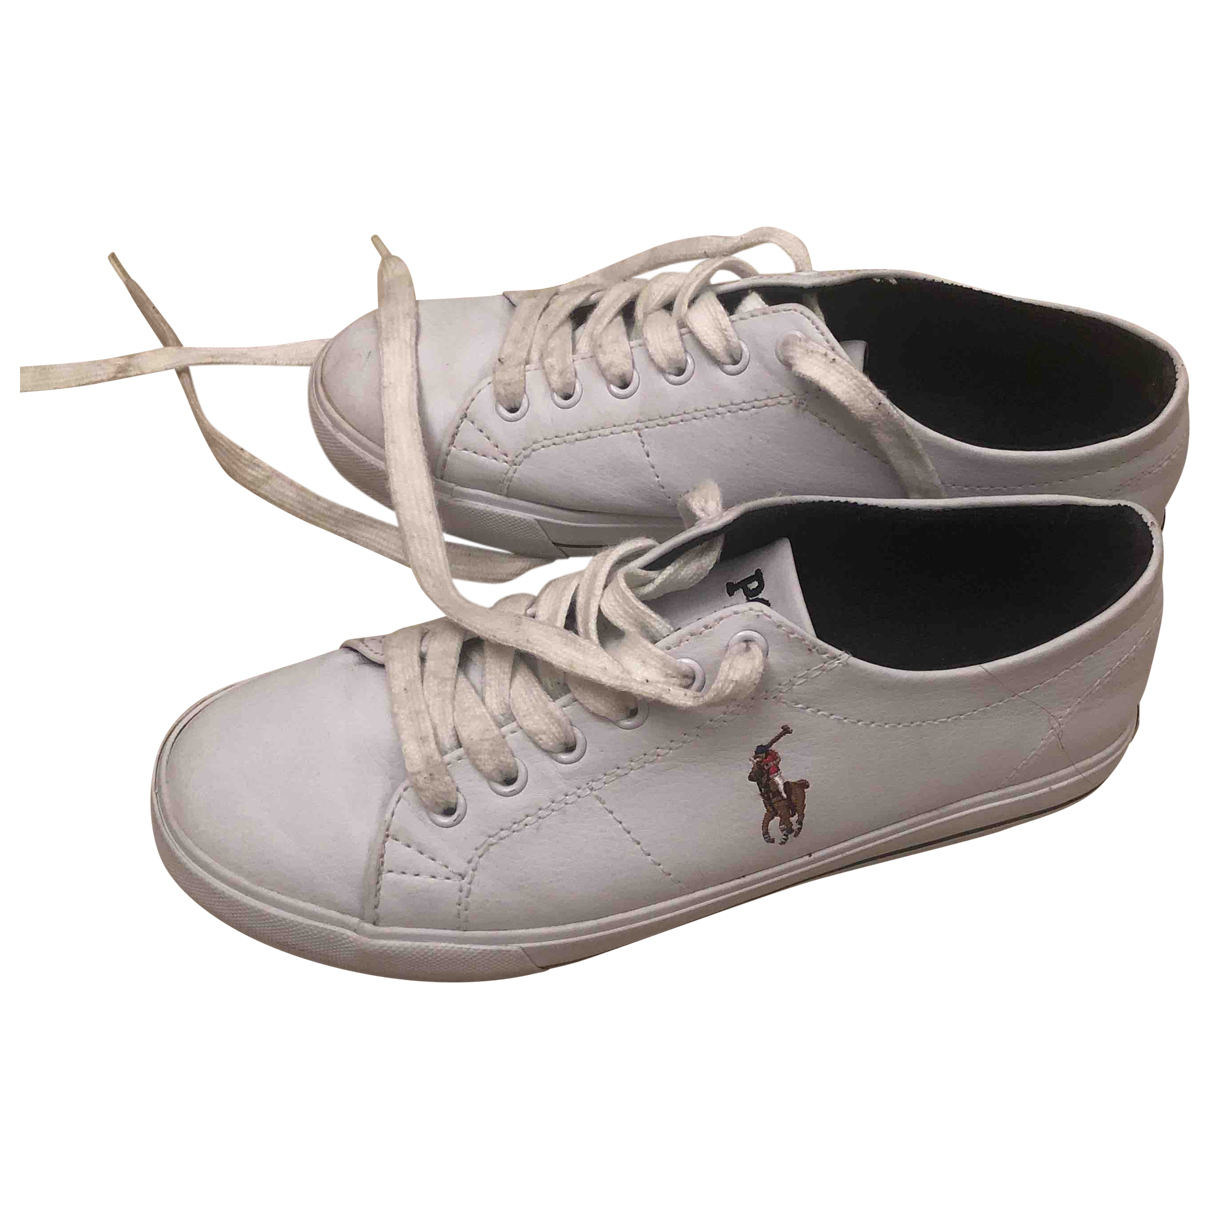 Polo Ralph Lauren N White Leather Trainers for Women 37 EU